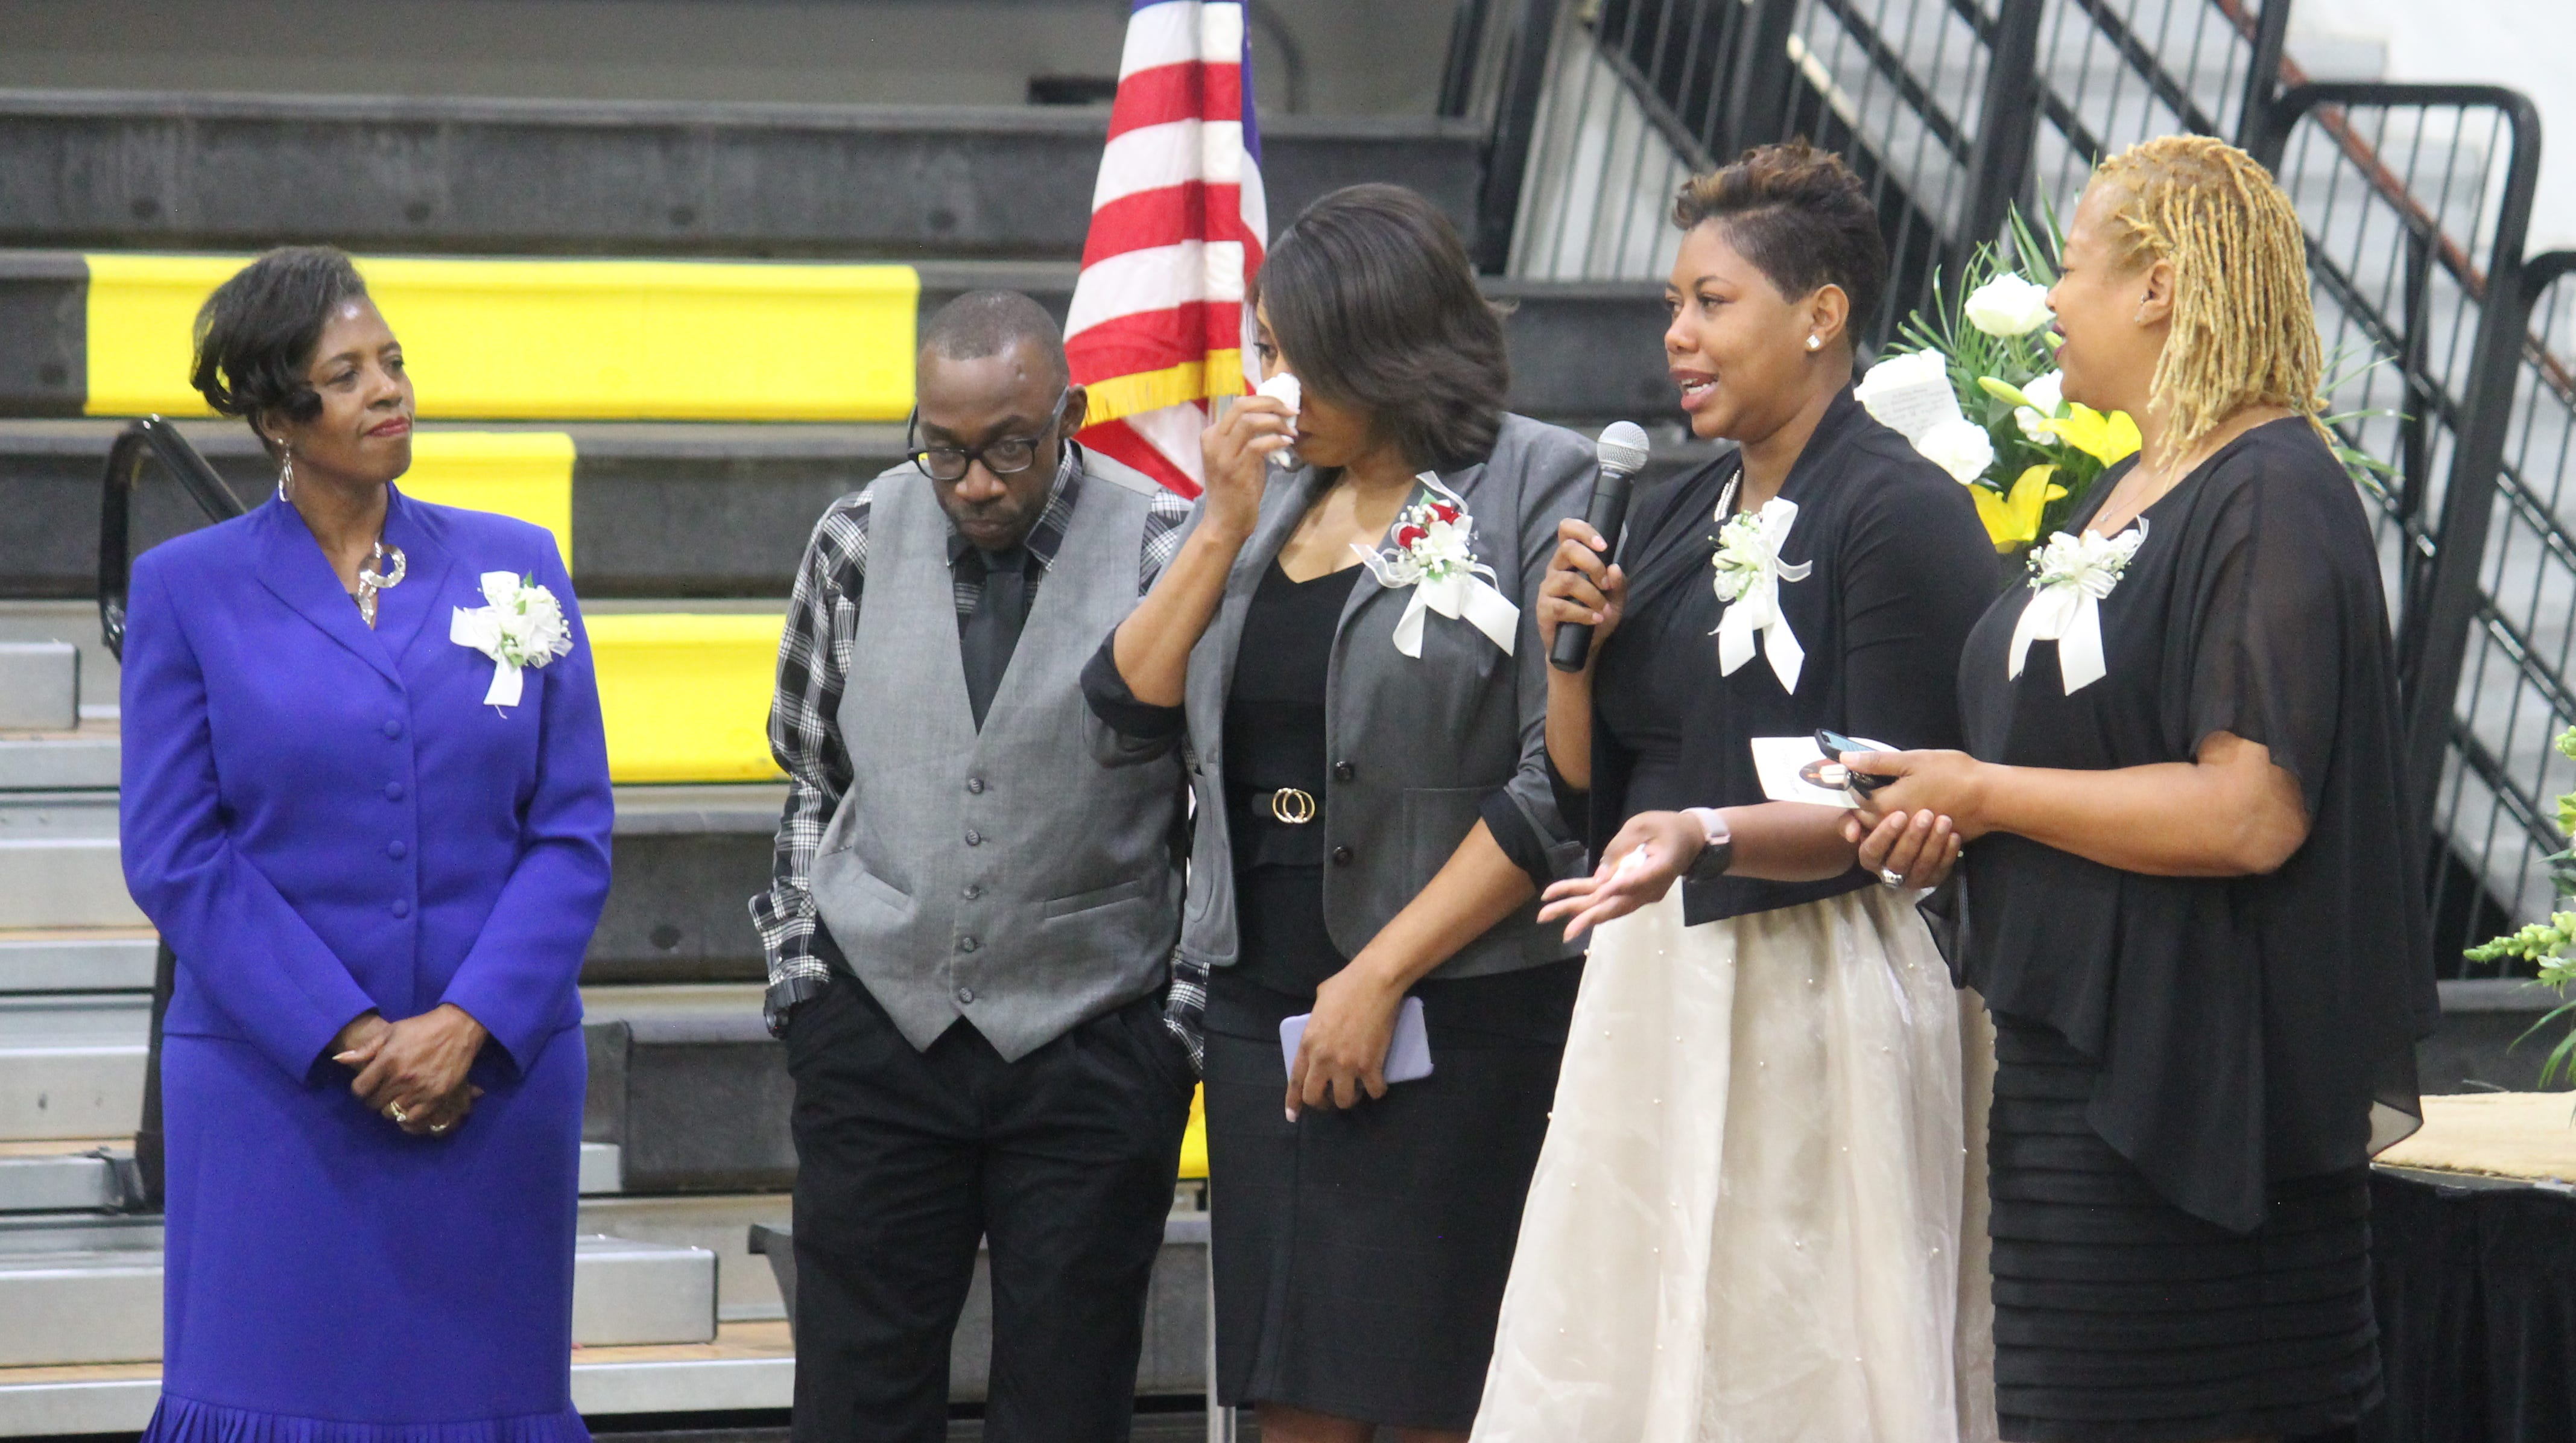 Hundreds of people gathered at Alamogordo High School on Monday to say goodbye to former AHS athletic director Lawrence Johnson, including, from L-R, his sister Regina Wright, nephew Trevon Johnson, and daughters Erika Johnson, Aisha Thomas, and Carla Johnson.